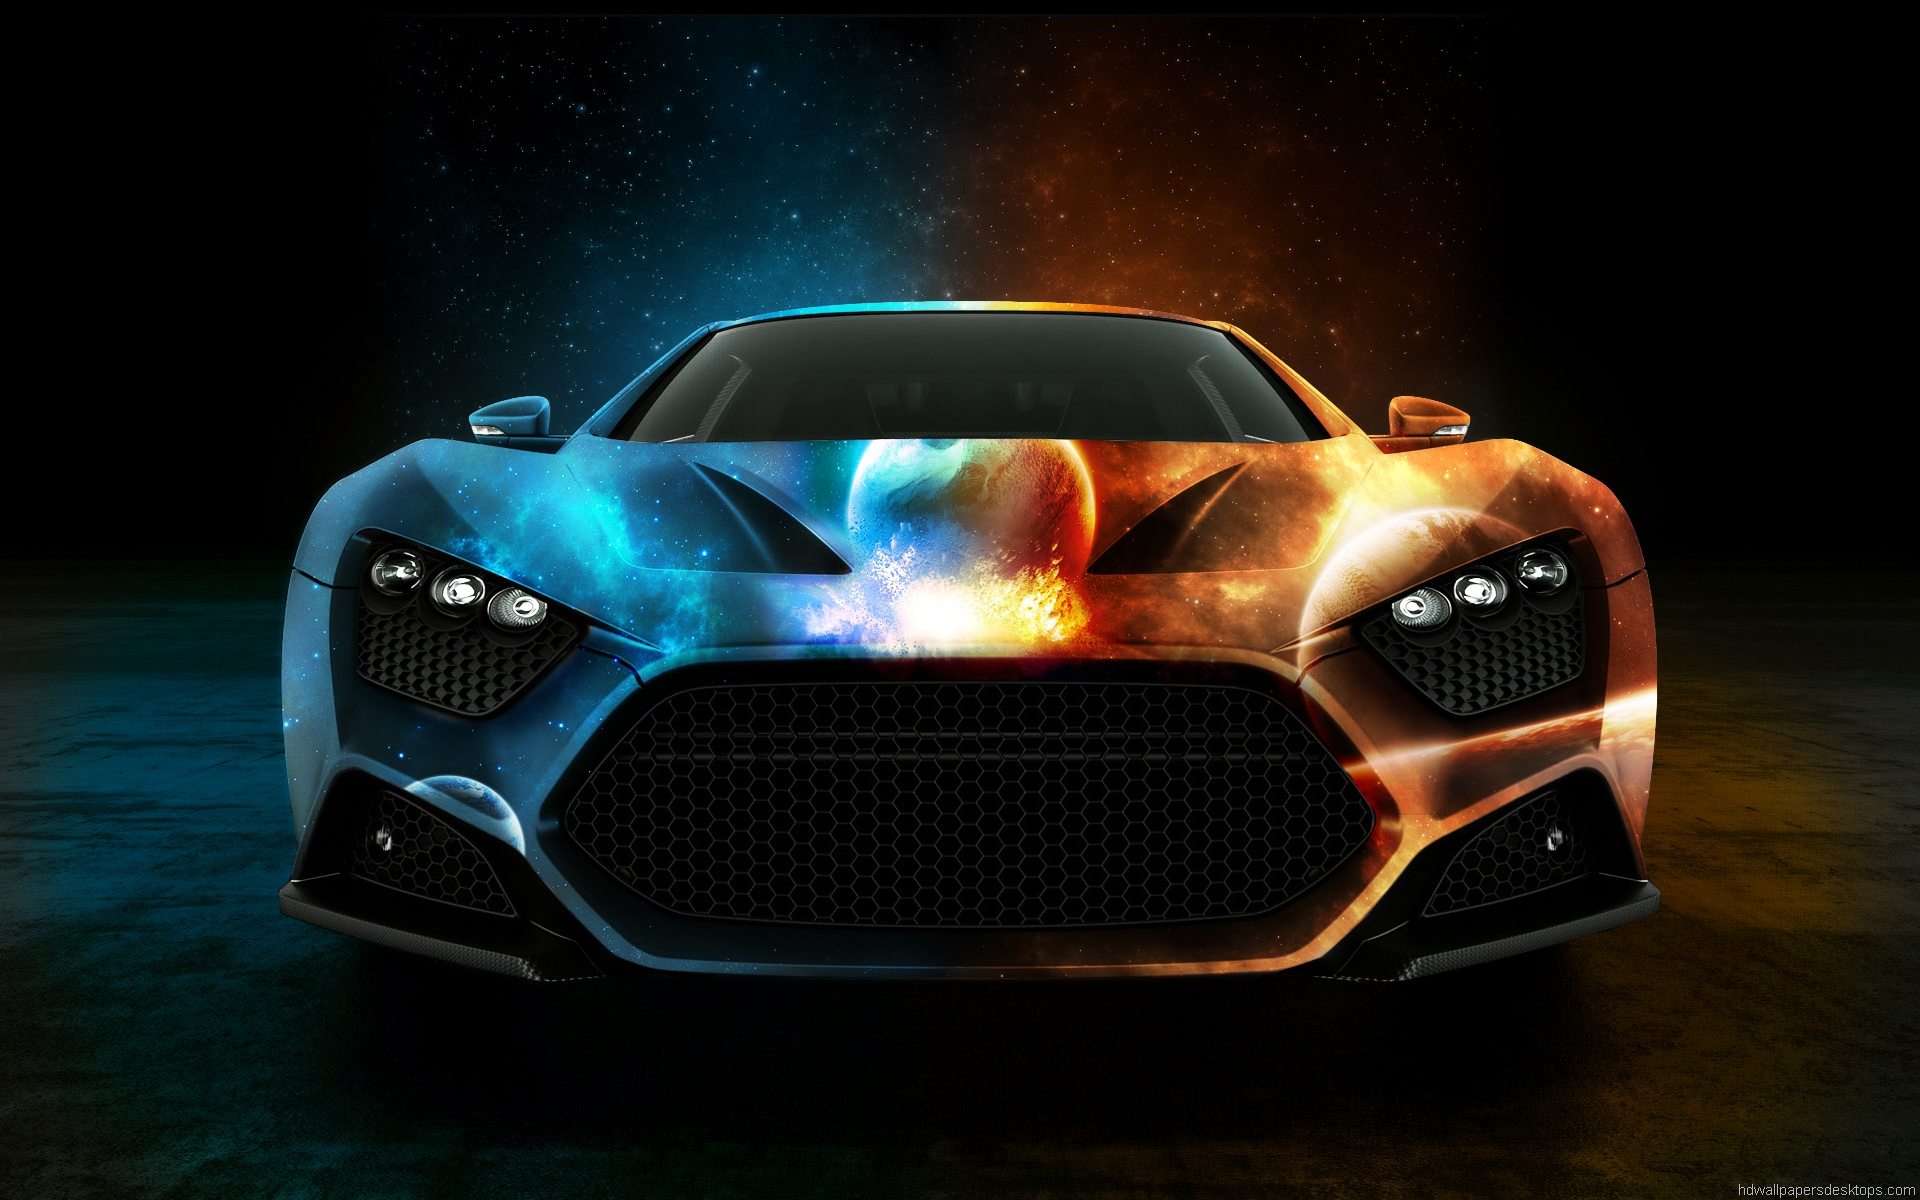 Cars Wallpapers Hd Full 1080p Desktop Backgrounds 1920x1200 Pictures 1920x1200